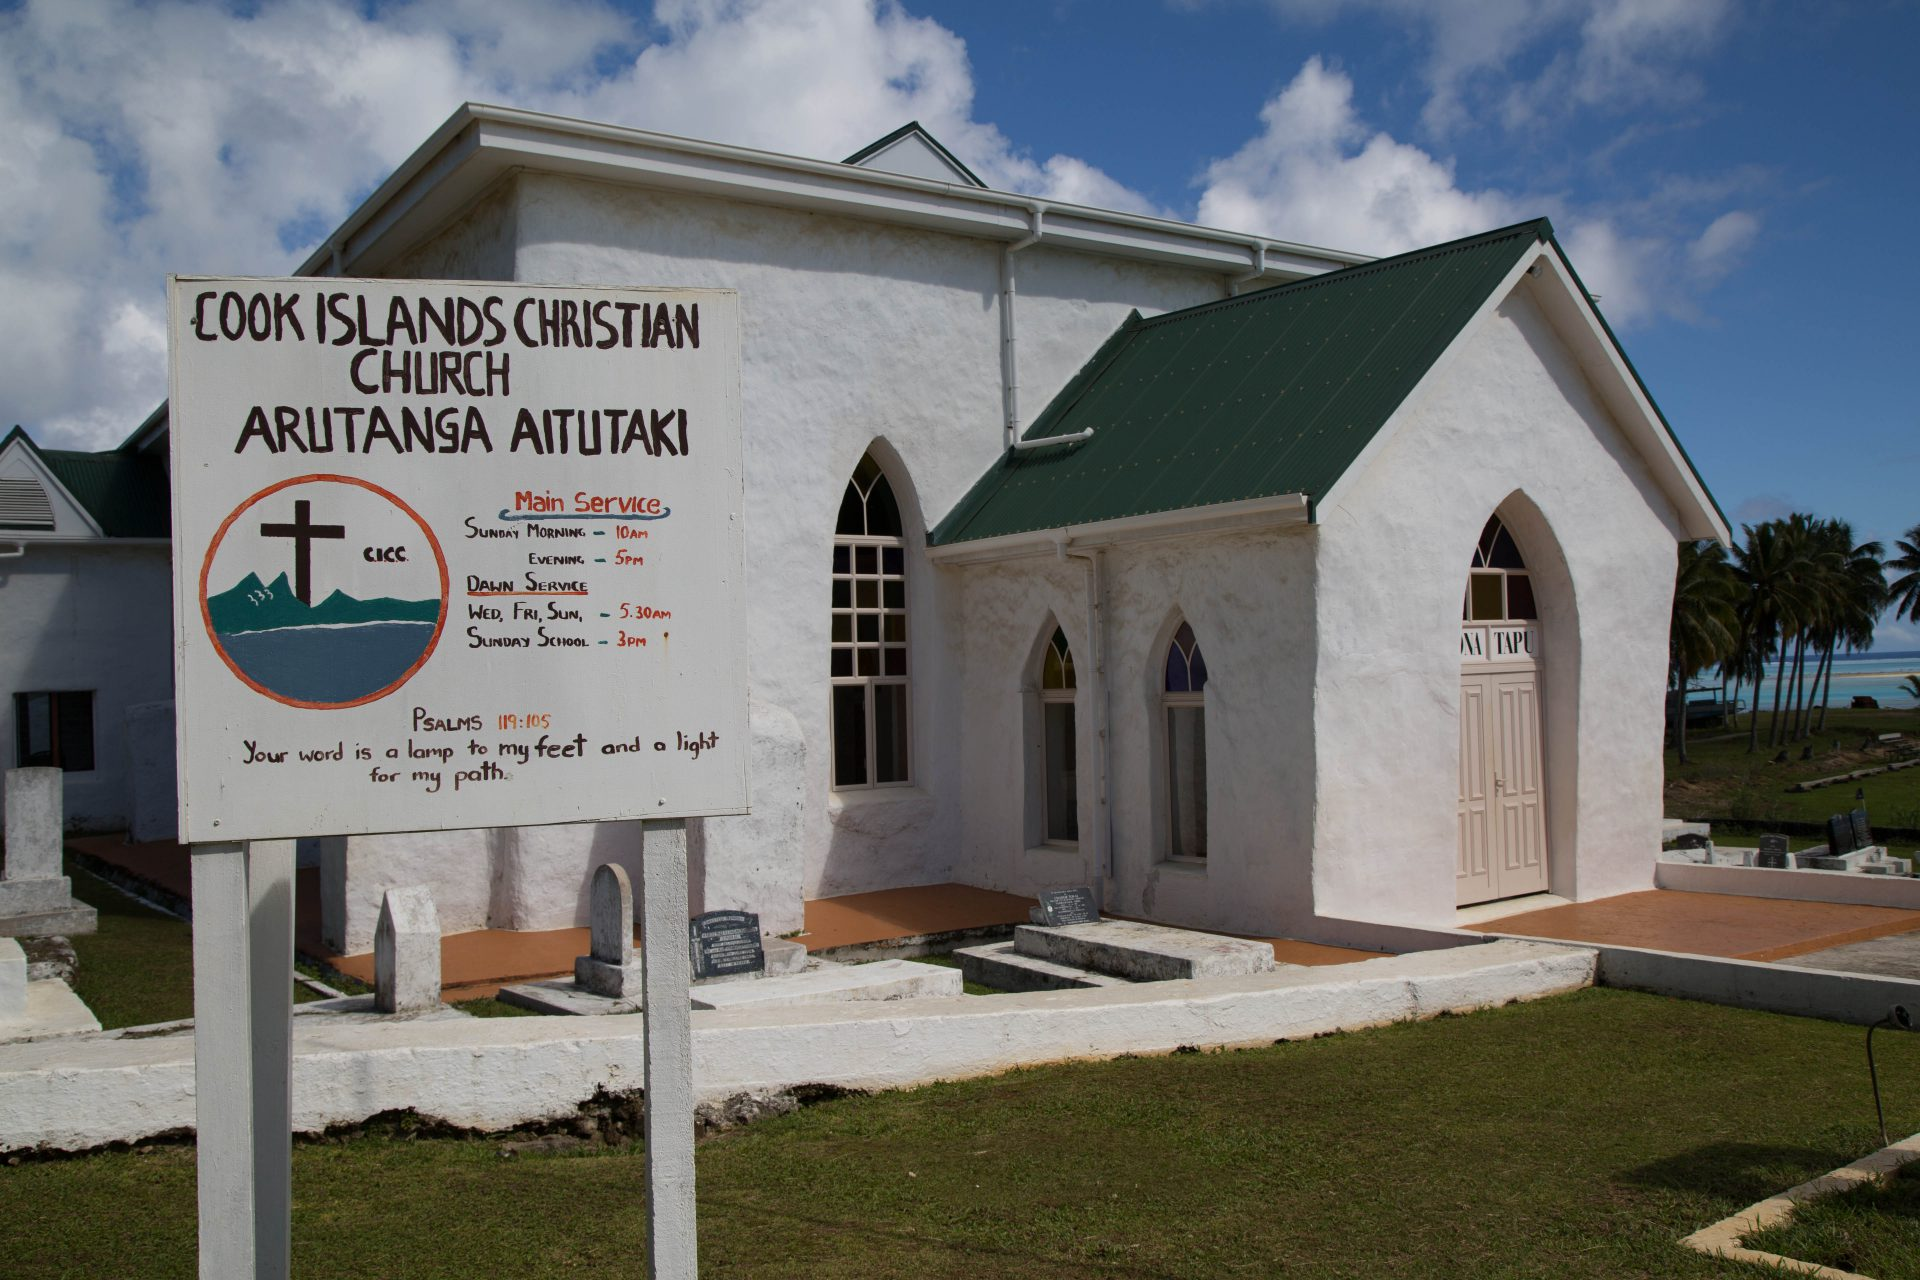 Oldest church building on the Cook Islands (1828), Aitutaki